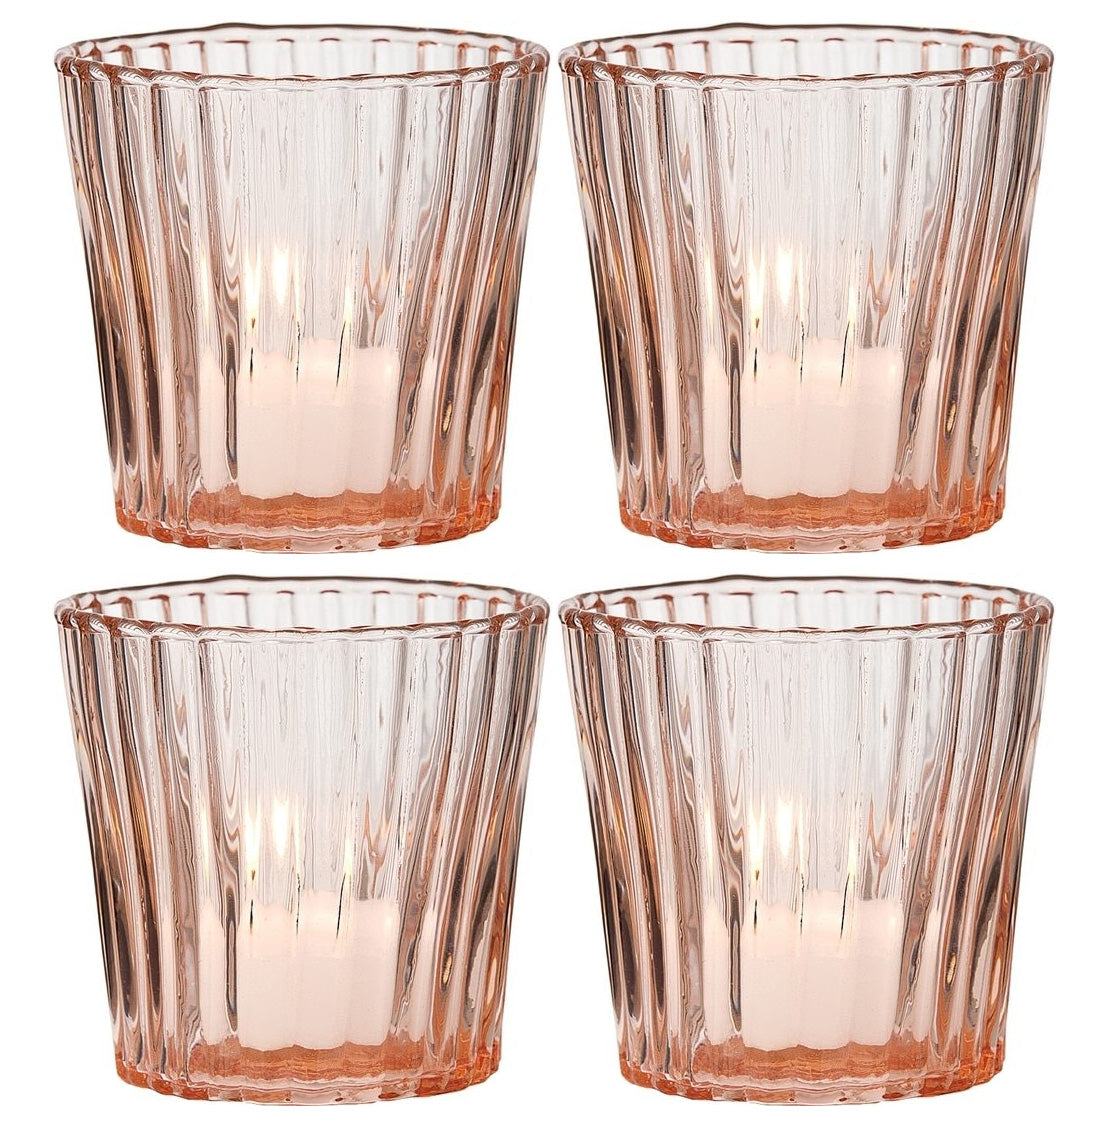 4 Pack | Vintage Glass Candle Holder (3-Inch, Caroline Design, Vertical Motif, Vintage Pink) - For Use with Tea Lights